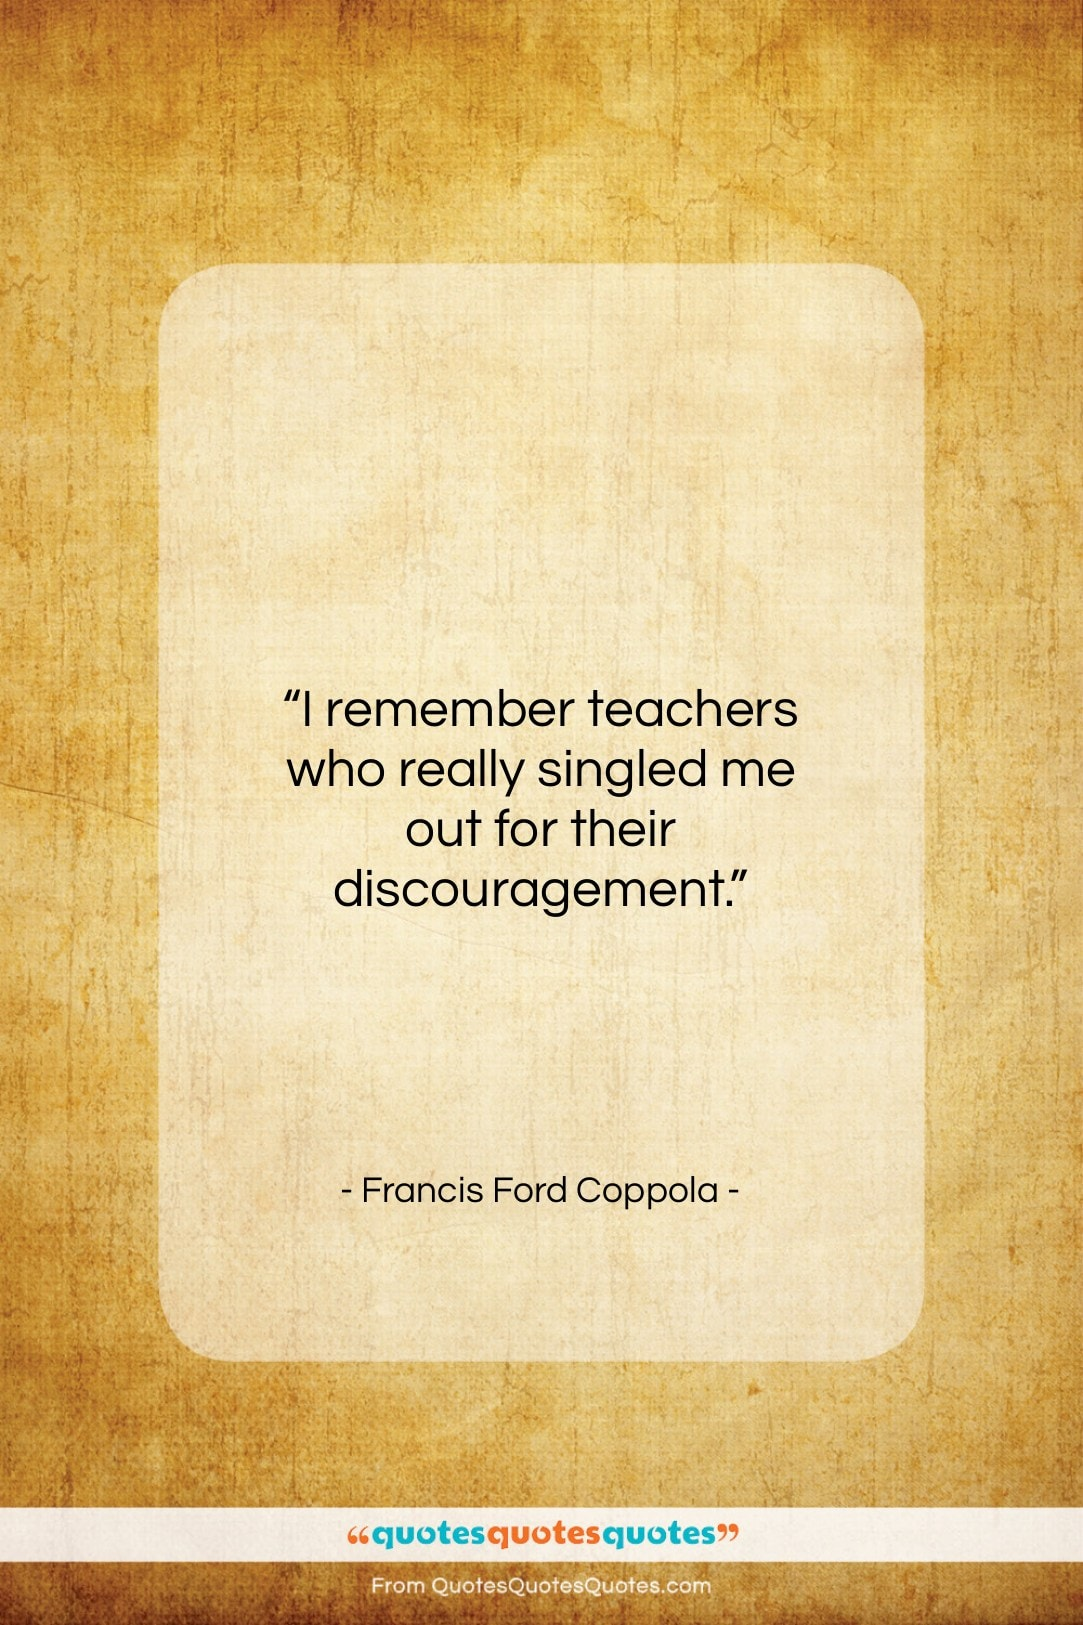 """Francis Ford Coppola quote: """"I remember teachers who really singled me…""""- at QuotesQuotesQuotes.com"""